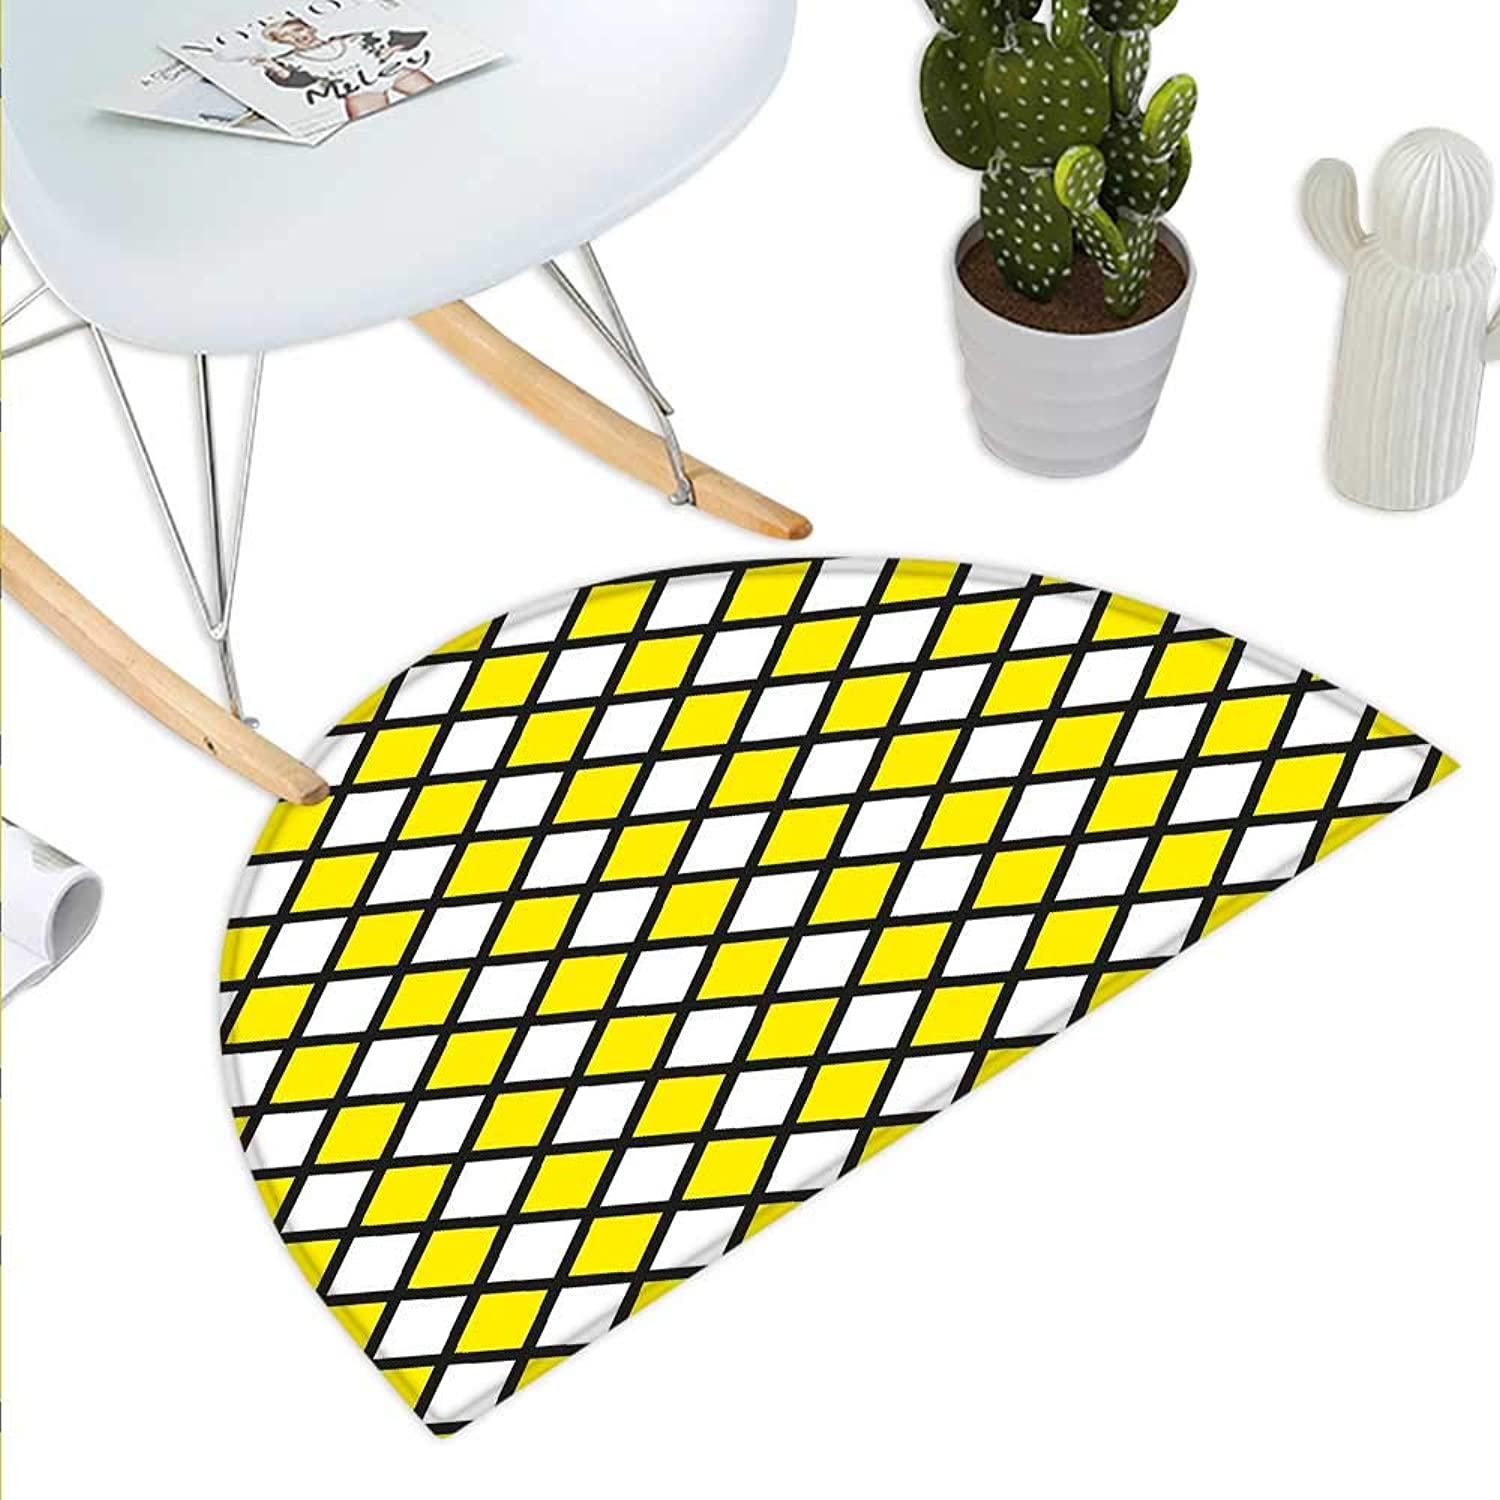 Yellow and White Semicircle Doormat Old Fashioned Checkered Pattern Black Lines Geometrical Squares Halfmoon doormats H 35.4  xD 53.1  Yellow White Black